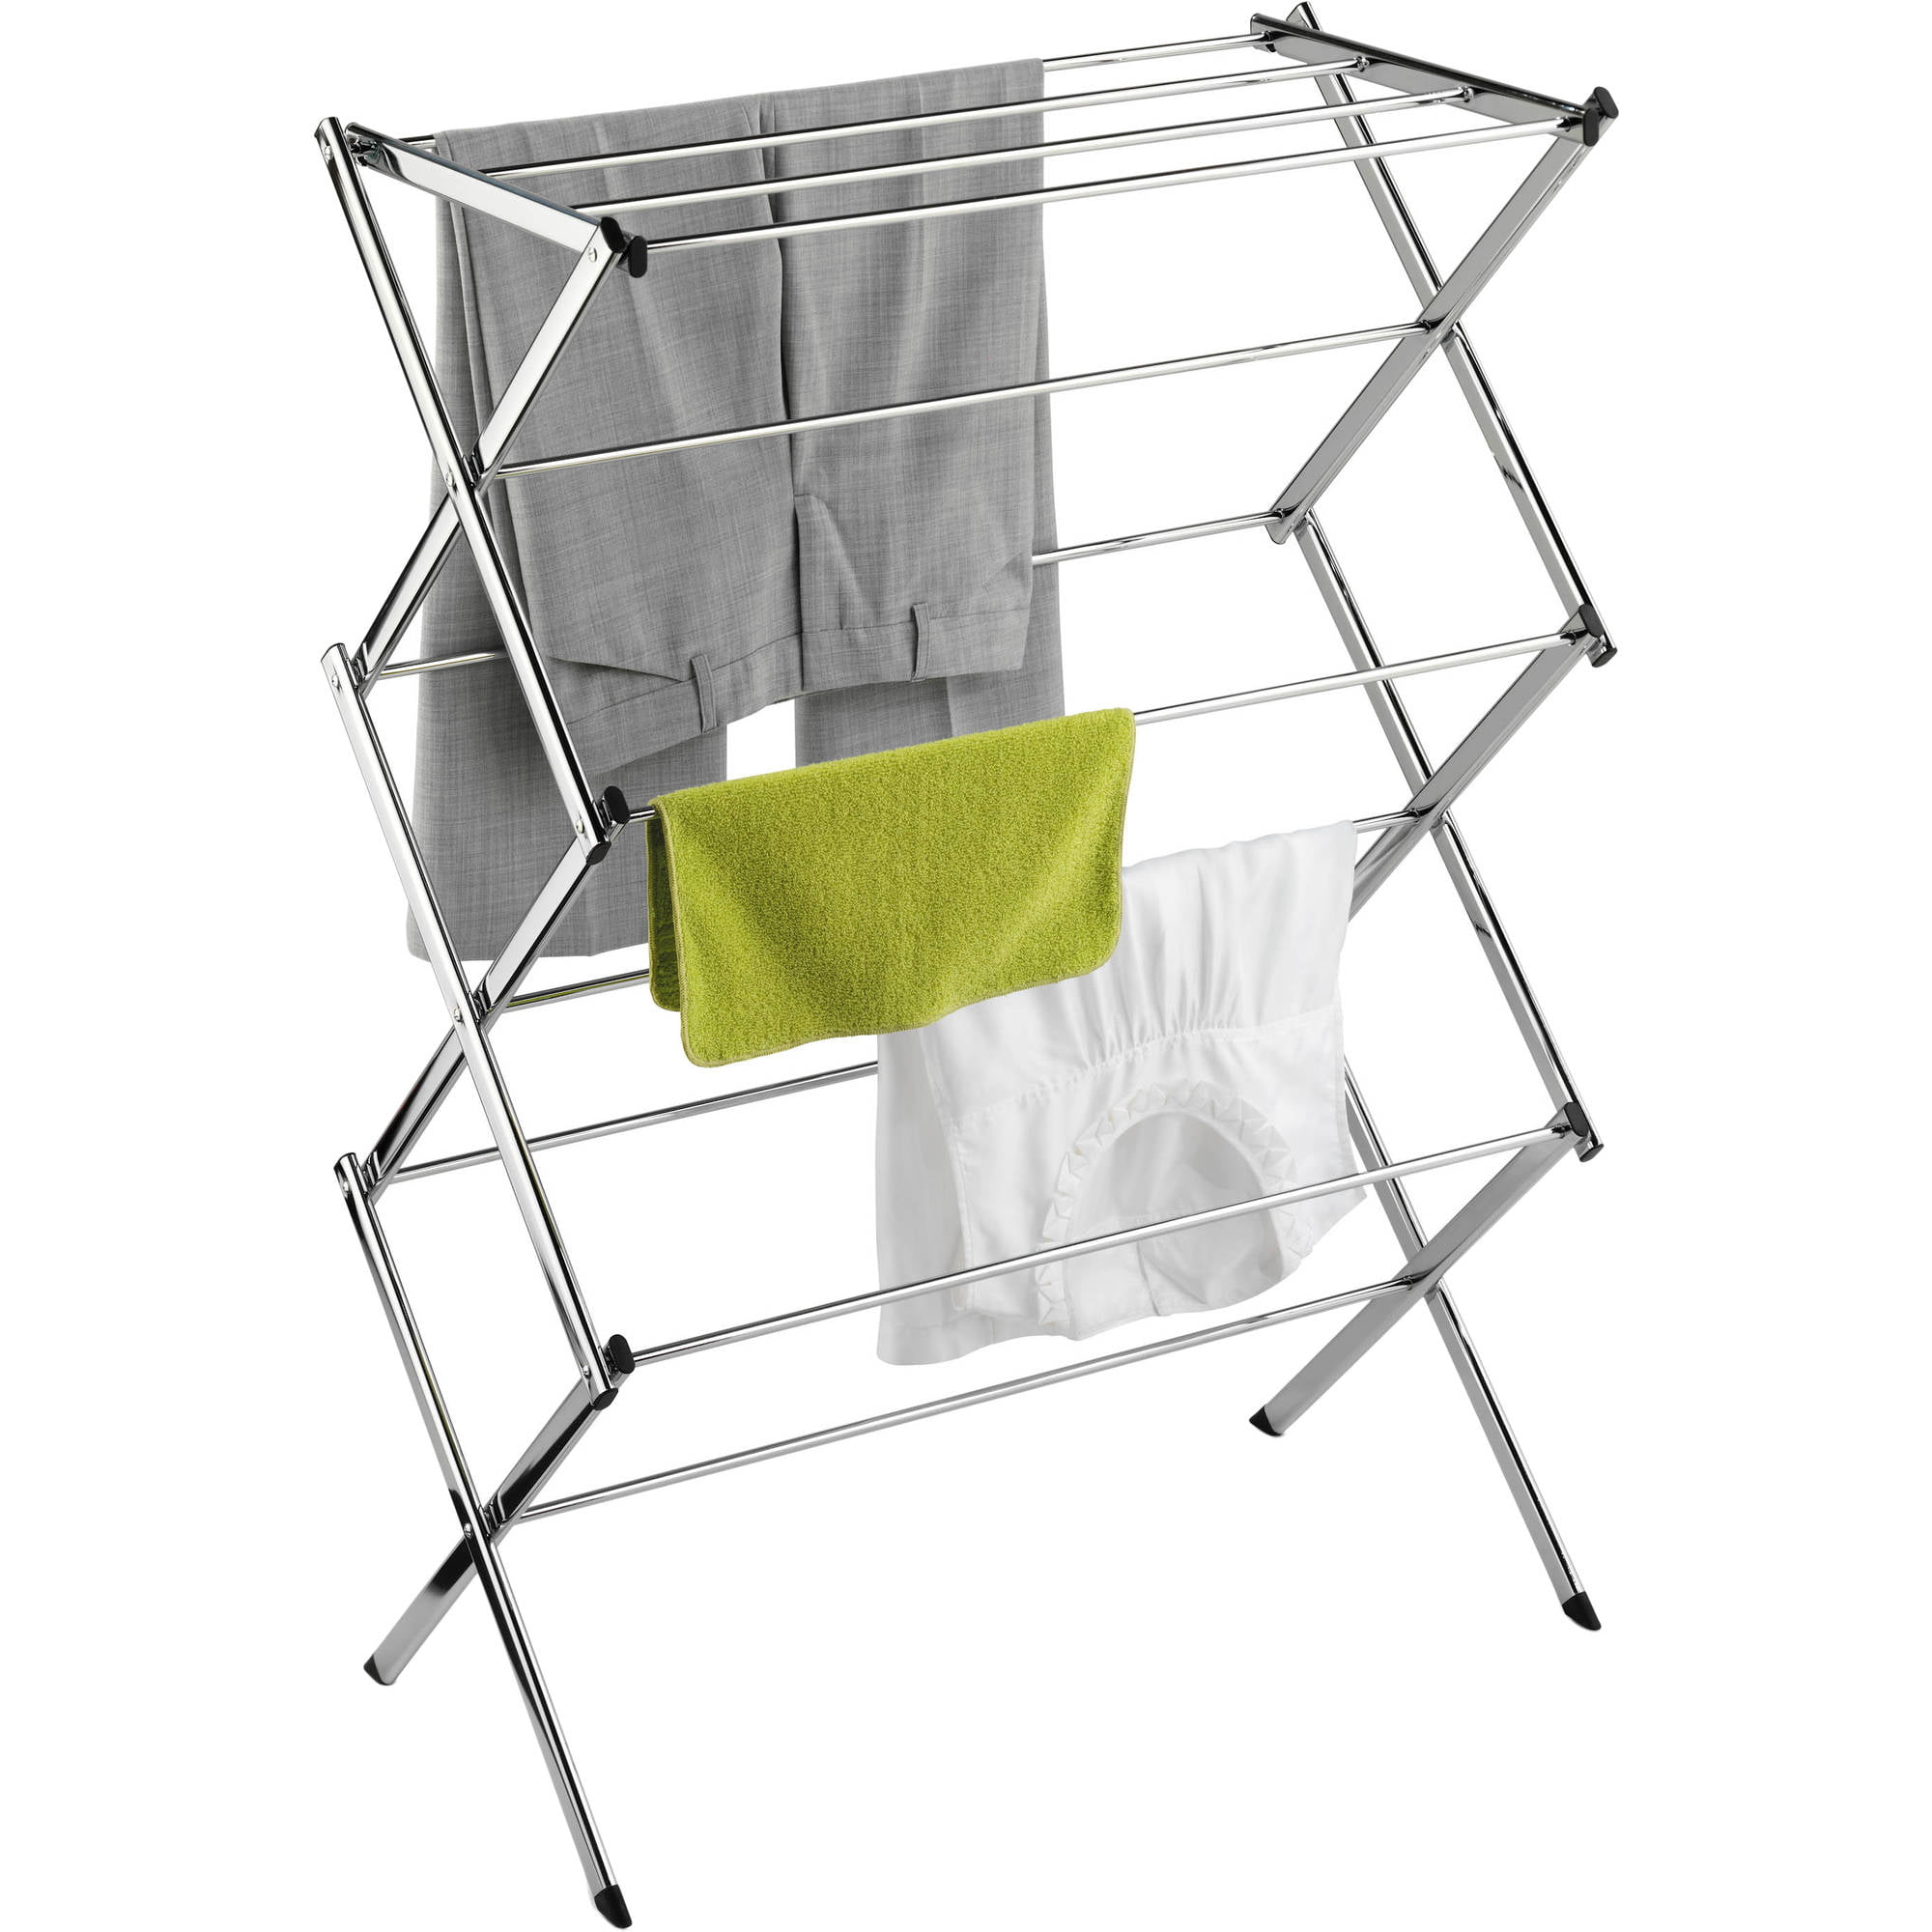 layers hanger bag dia underwear clothes rack basket folding cloth drying item dryer net laundry hanging